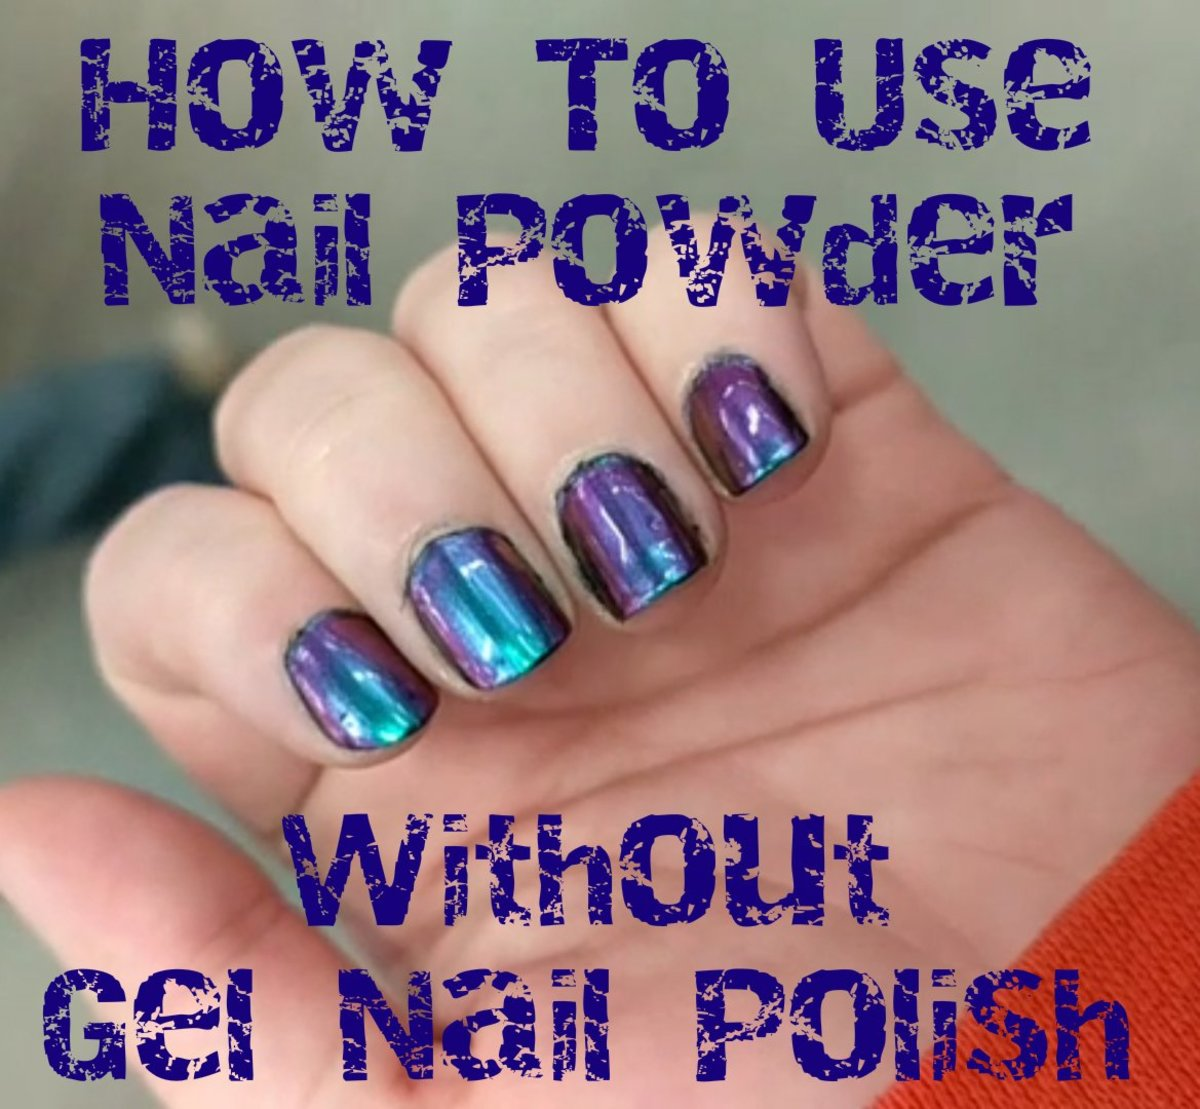 Nails DIY How to Use Multichrome or Holographic Powder